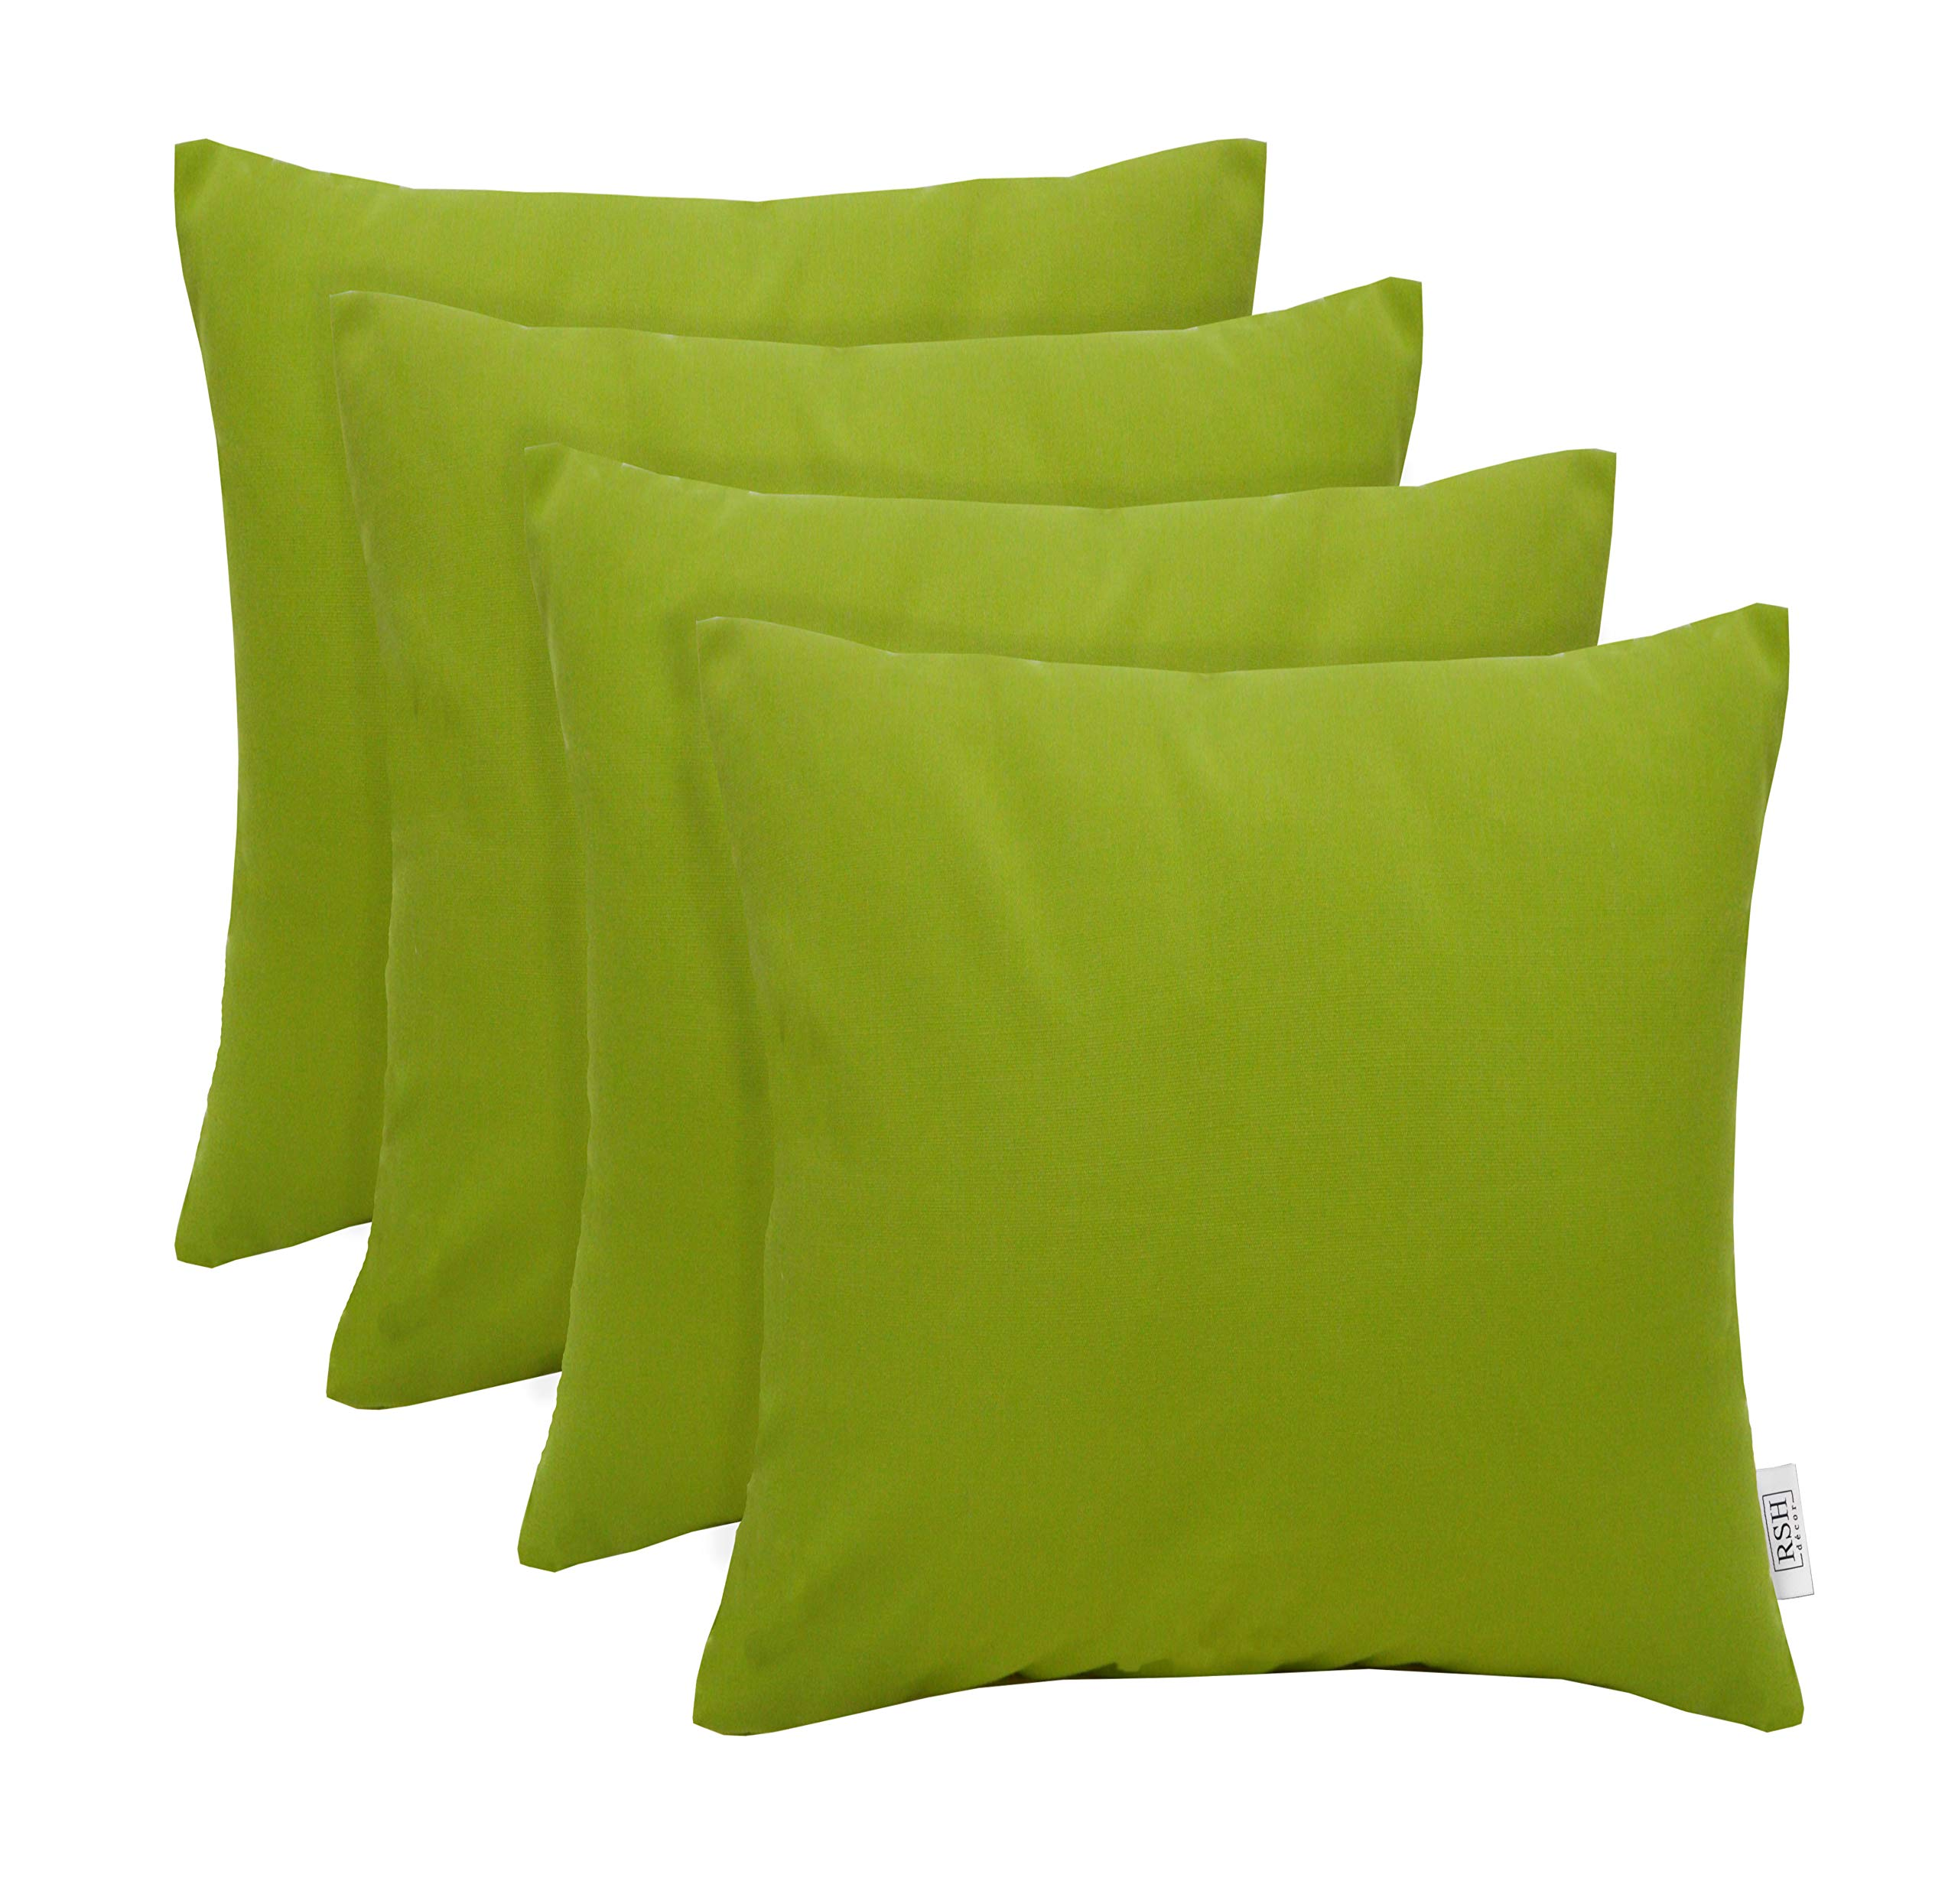 RSH Décor Set of 4 Indoor/Outdoor Square Throw Pillows Sunbrella Canvas Macaw Green (20'' x 20'')